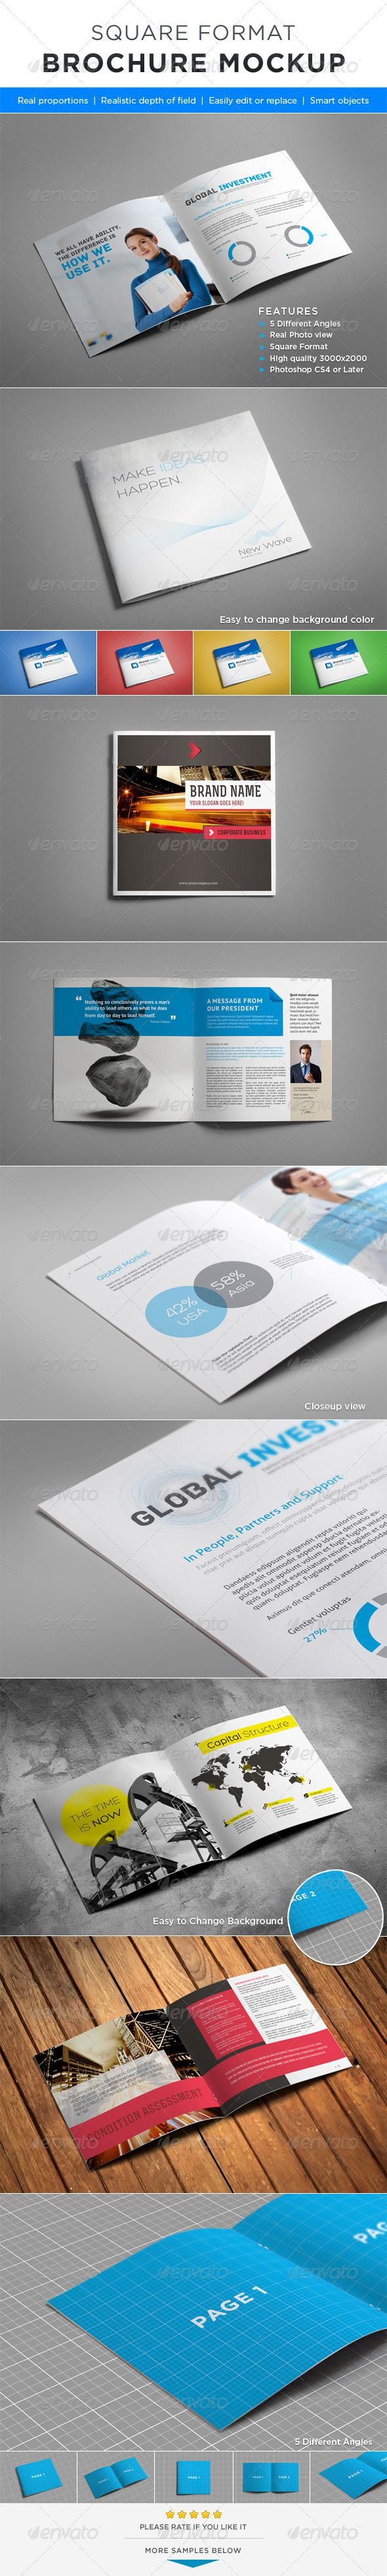 Best Brochure Images On   Business Card Templates